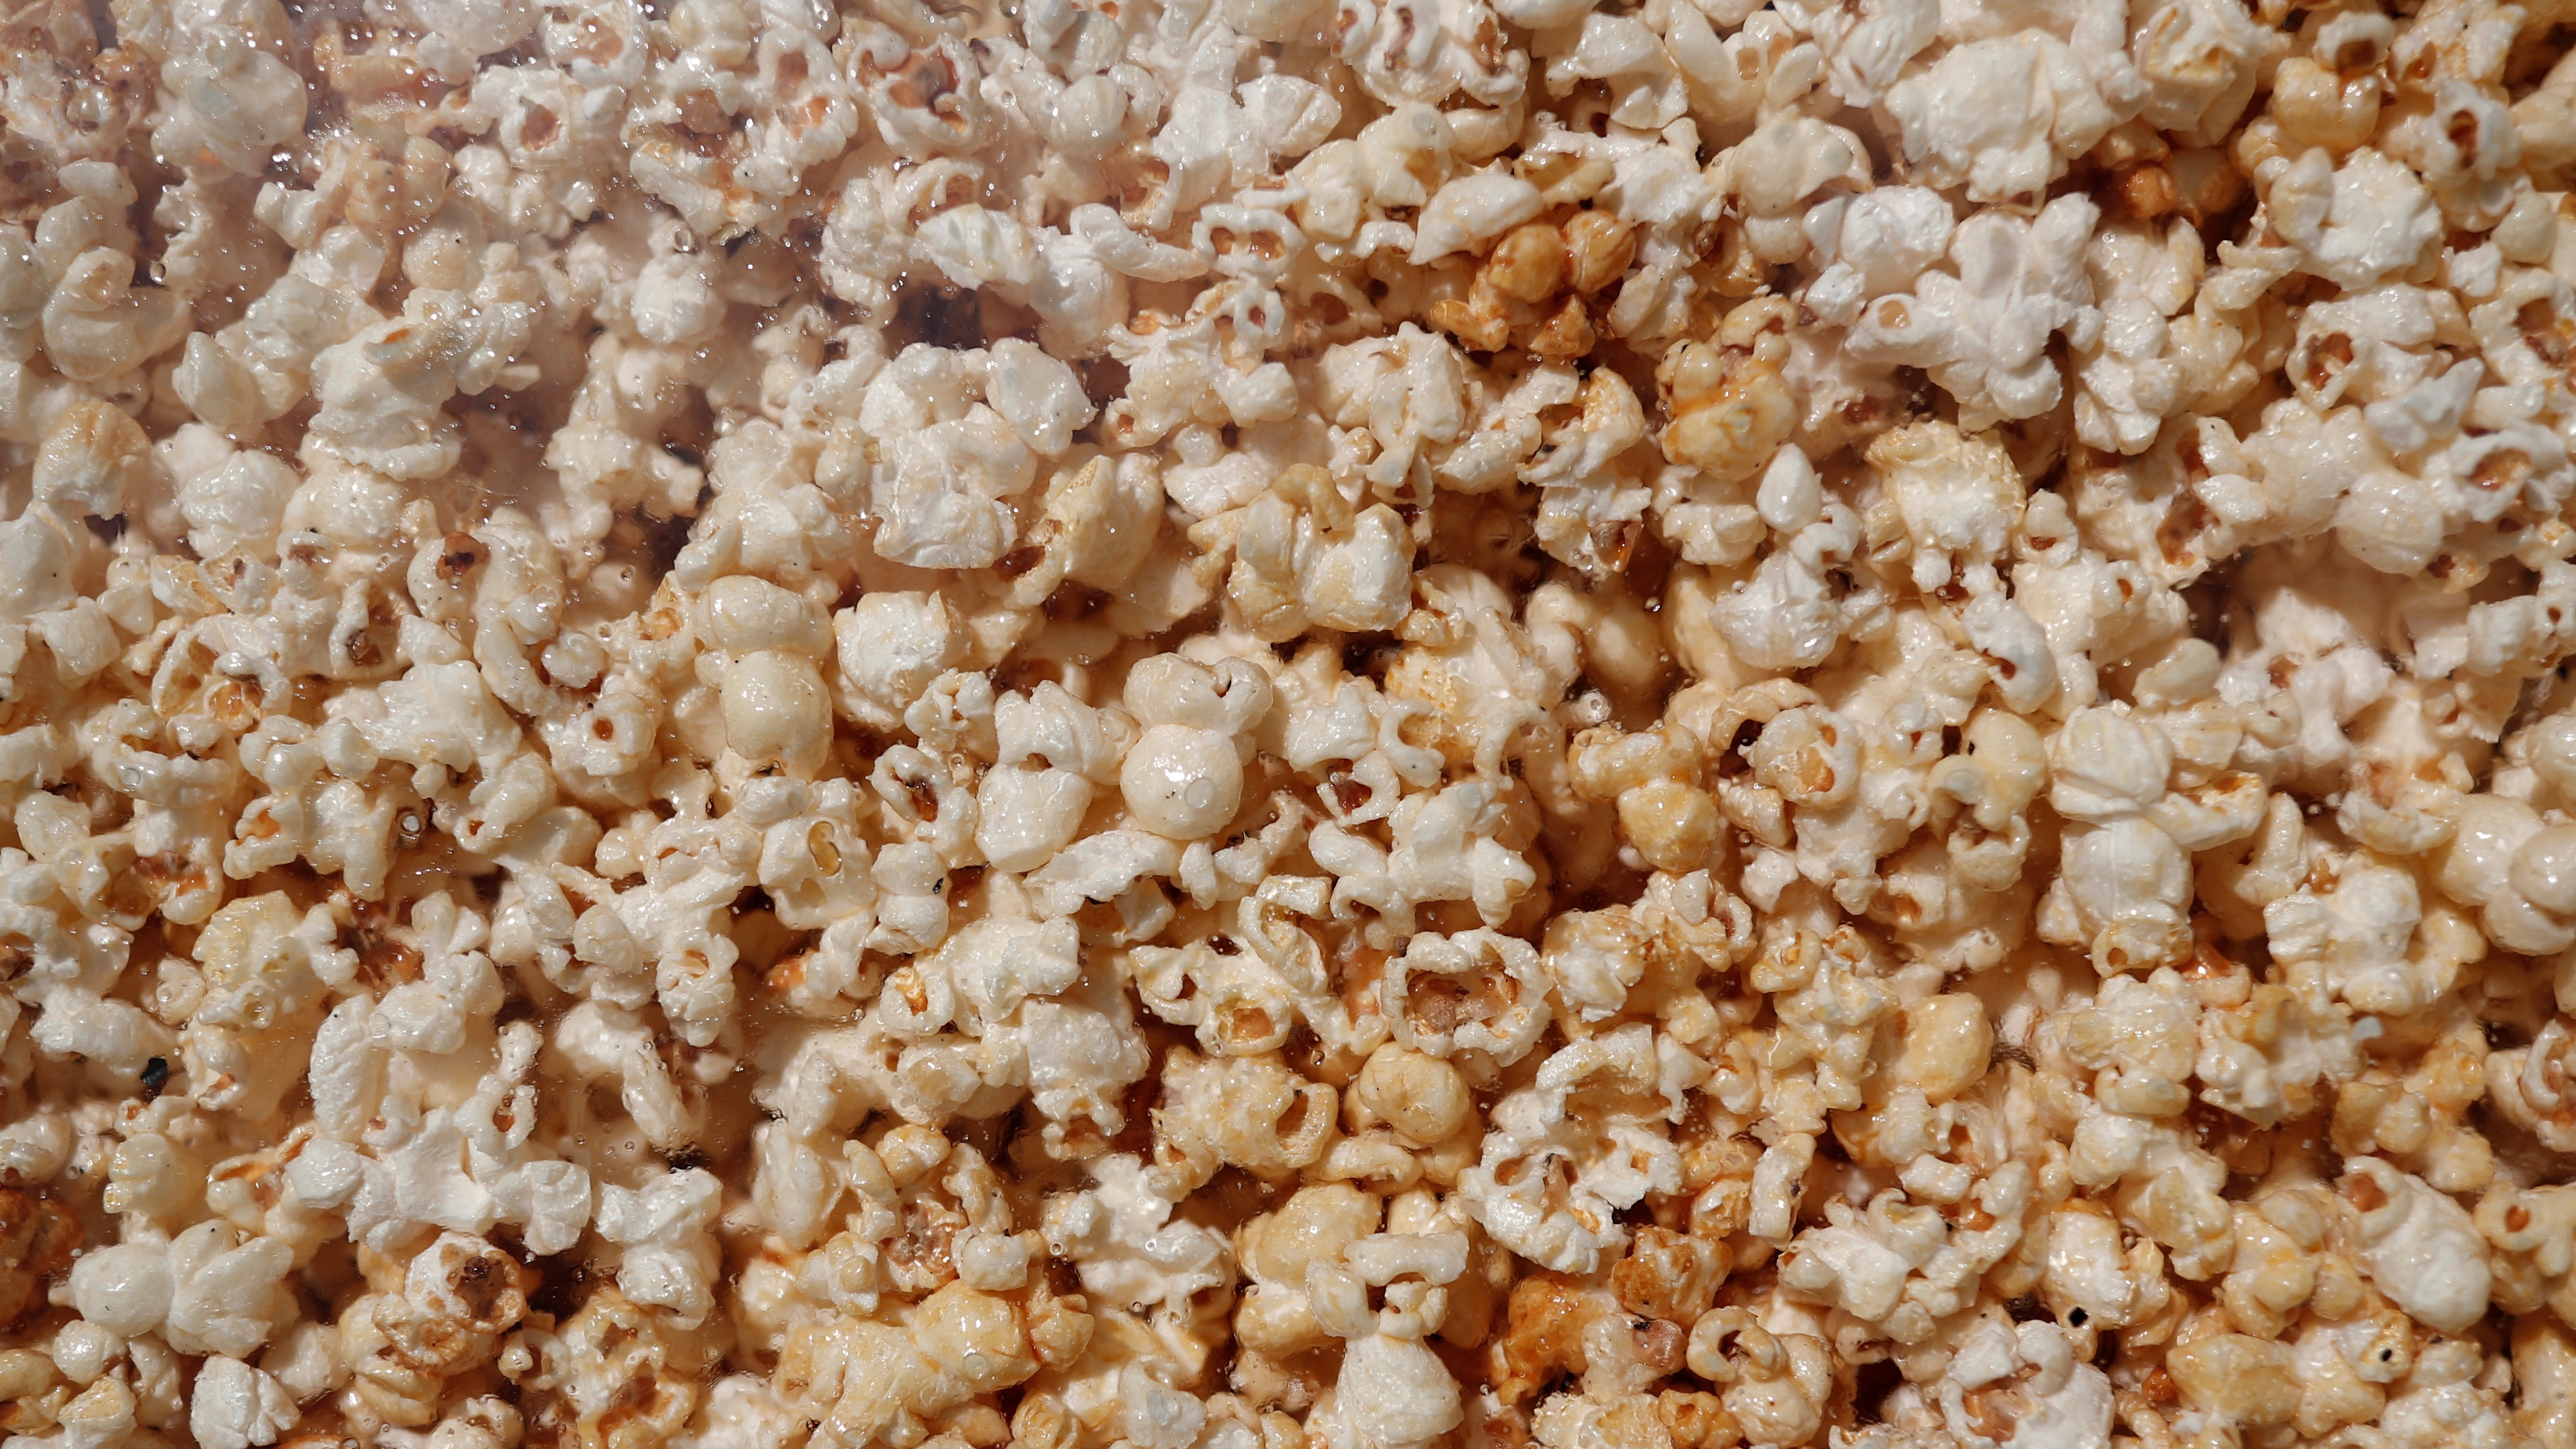 There's more to popcorn than meets the eye.